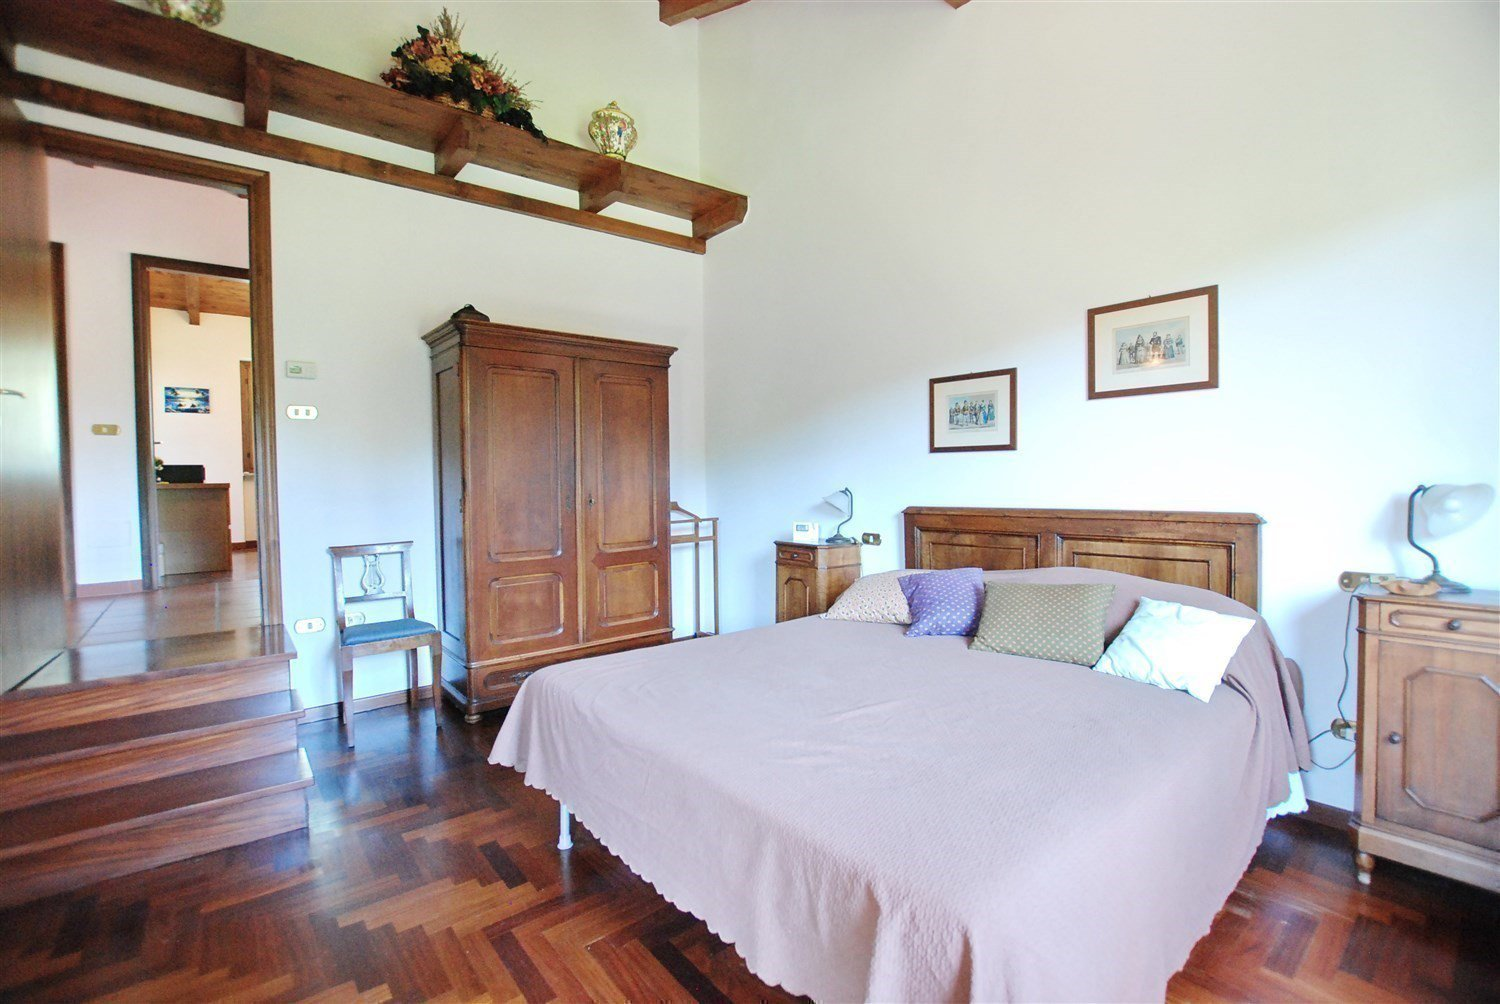 Terraced house for sale in Gignese, based in Vezzo - bedroom